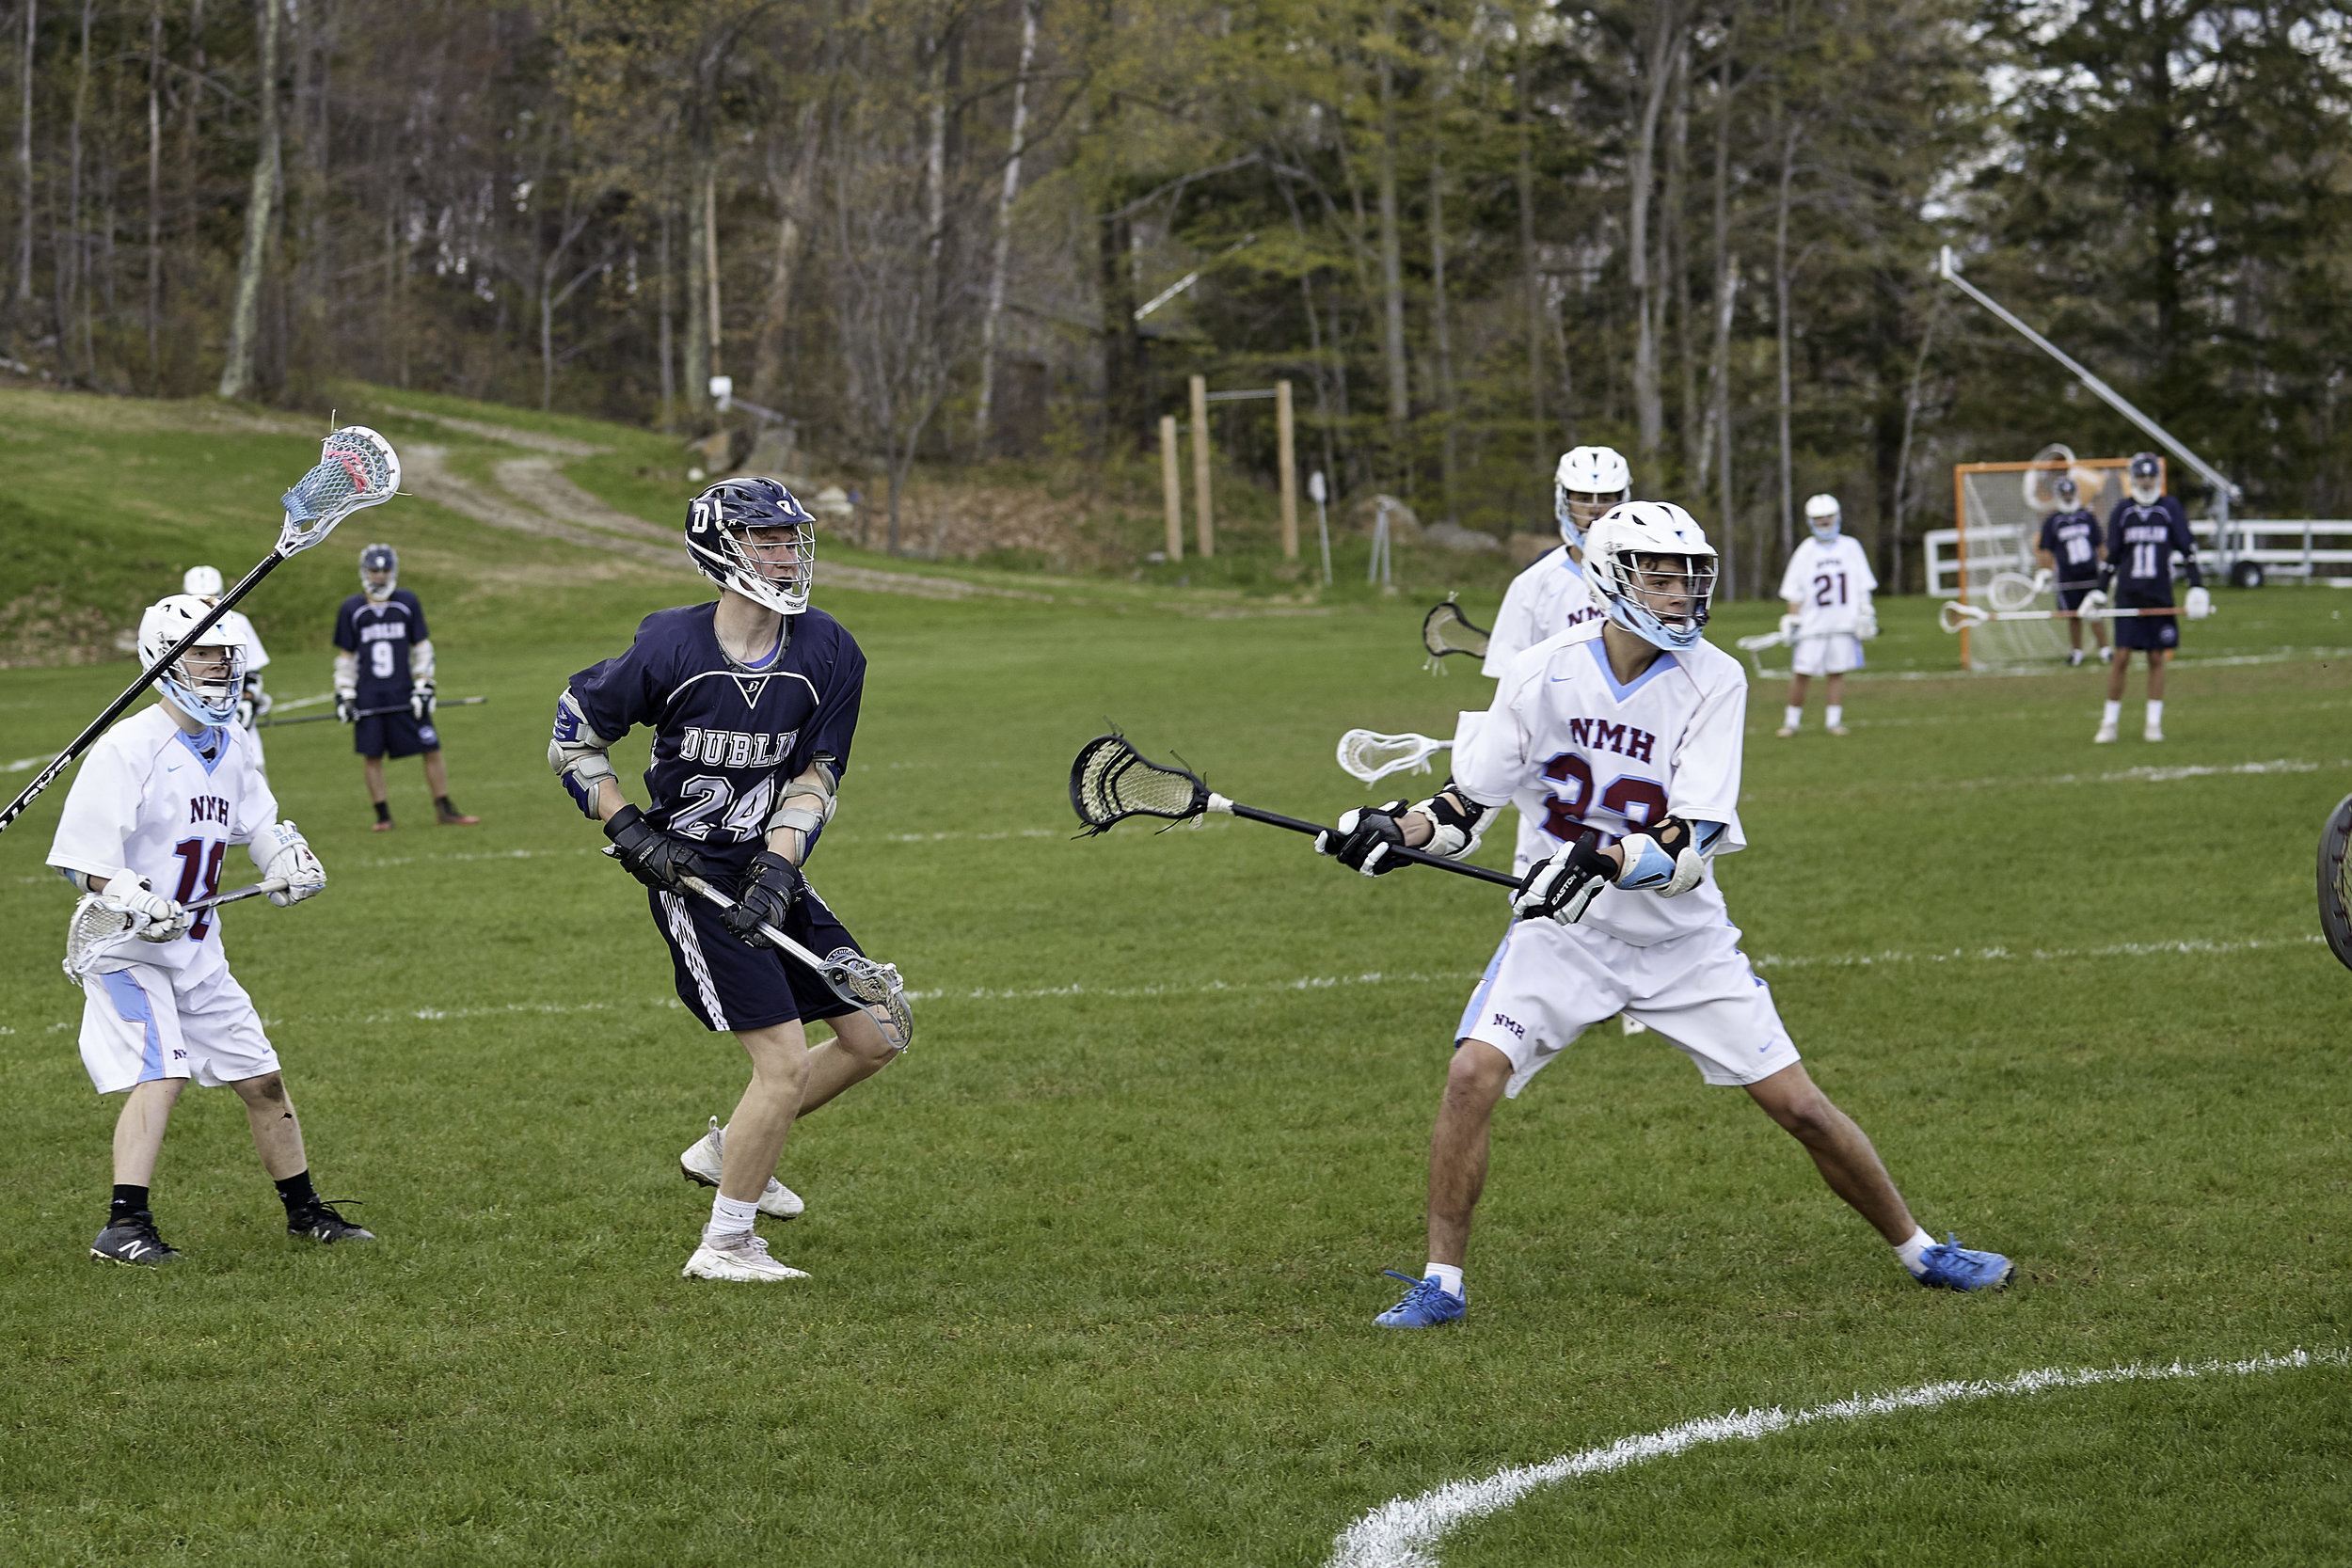 Boys Lax vs Northfield Mount Hermon JV - May 15 2019 - 0044.jpg